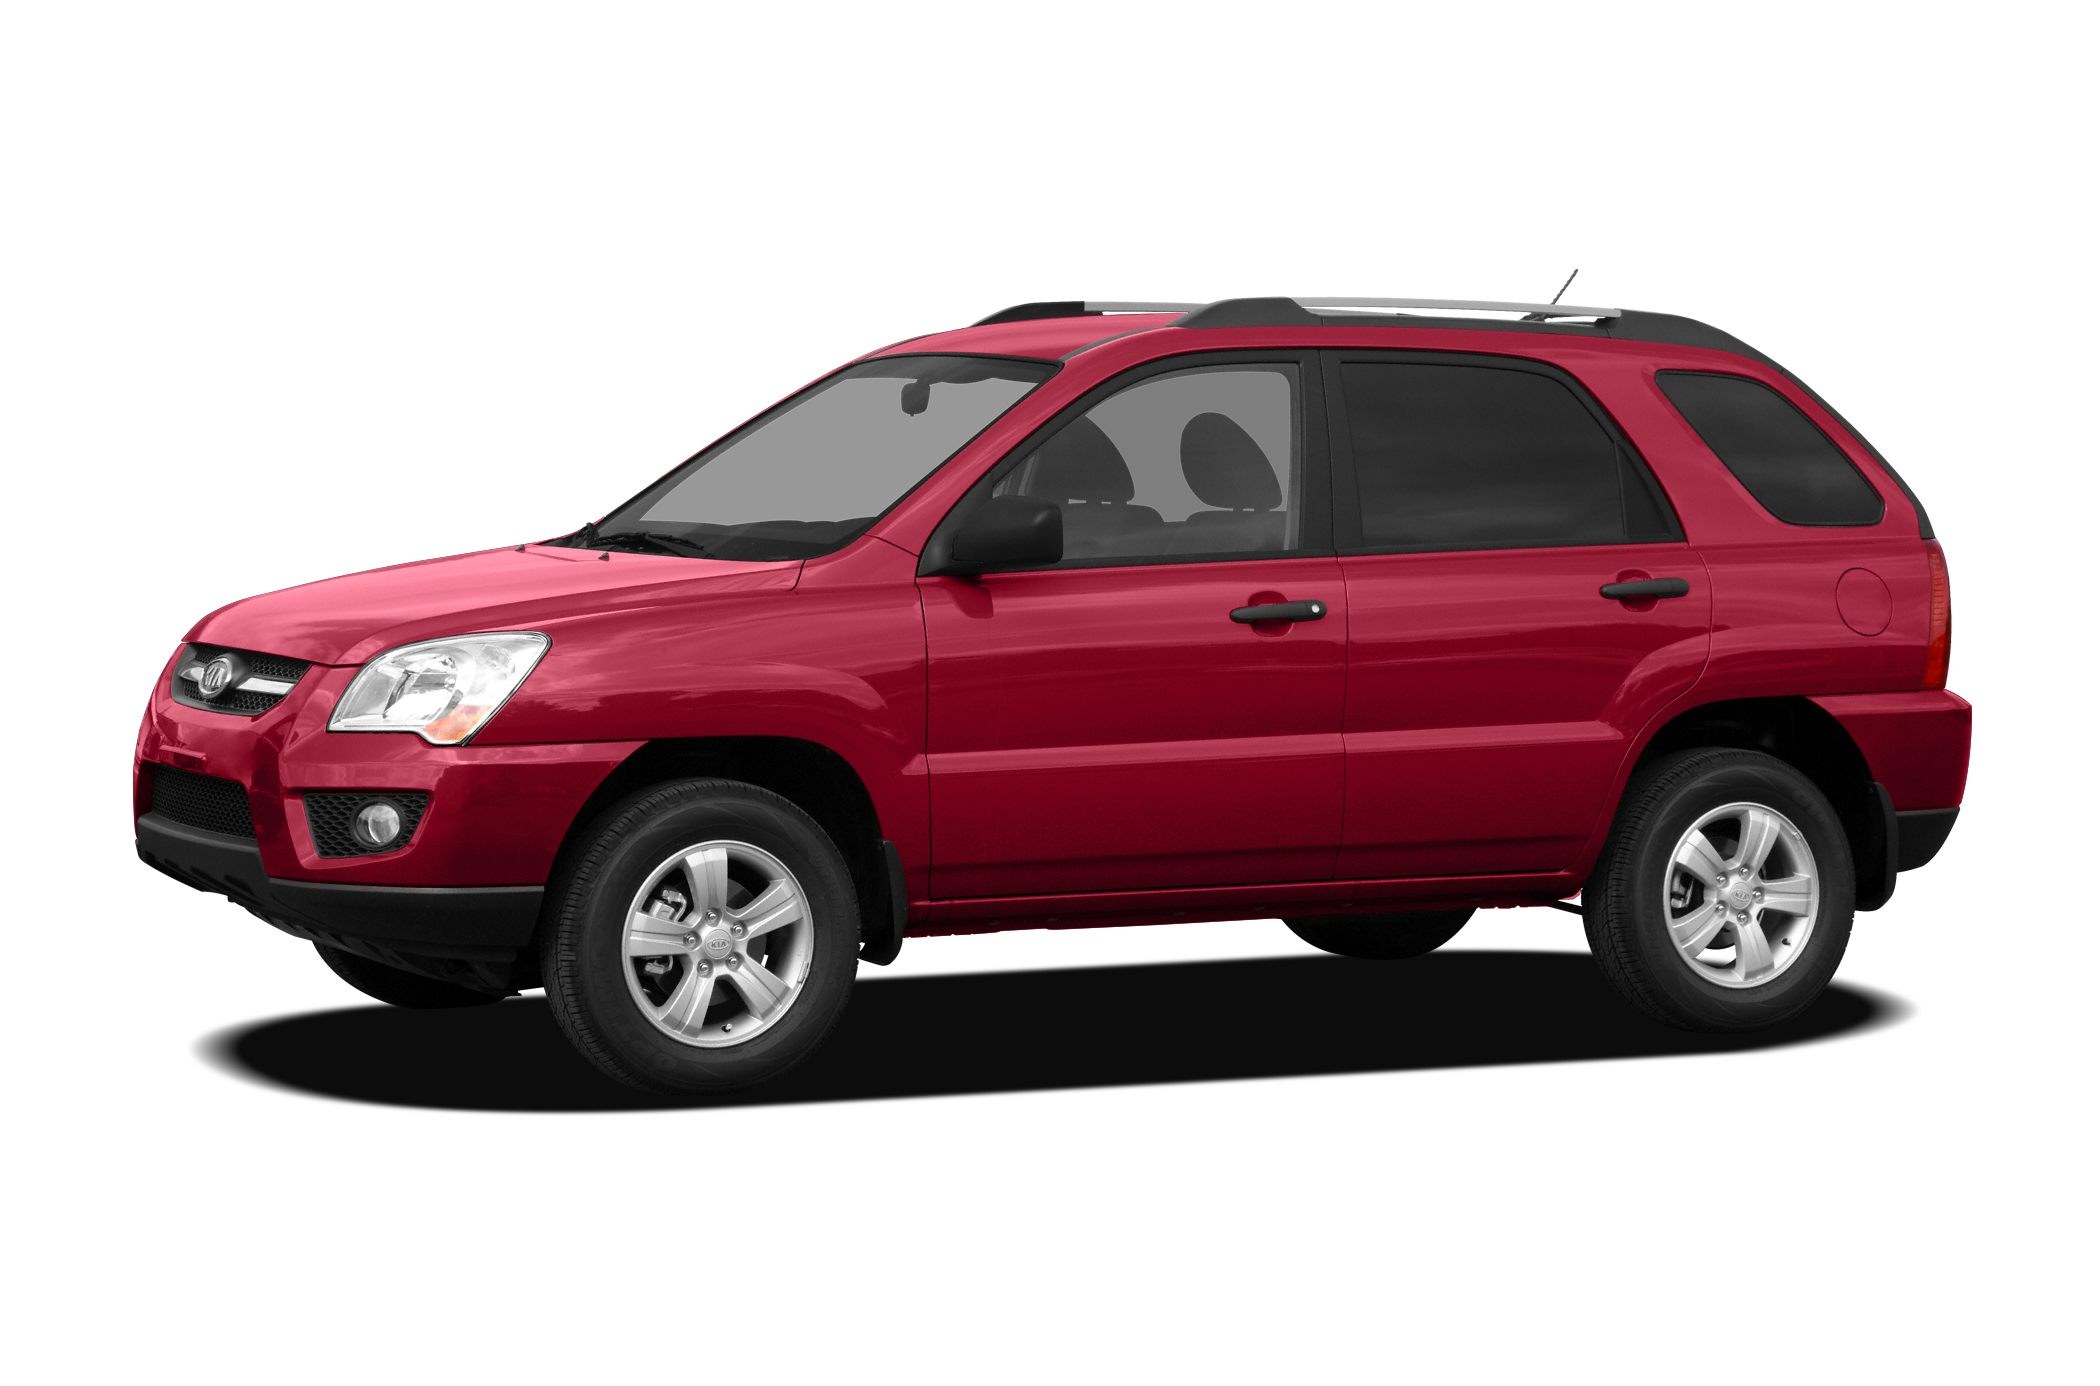 2009 Kia Sportage EX SUV for sale in Traverse City for $12,490 with 65,551 miles